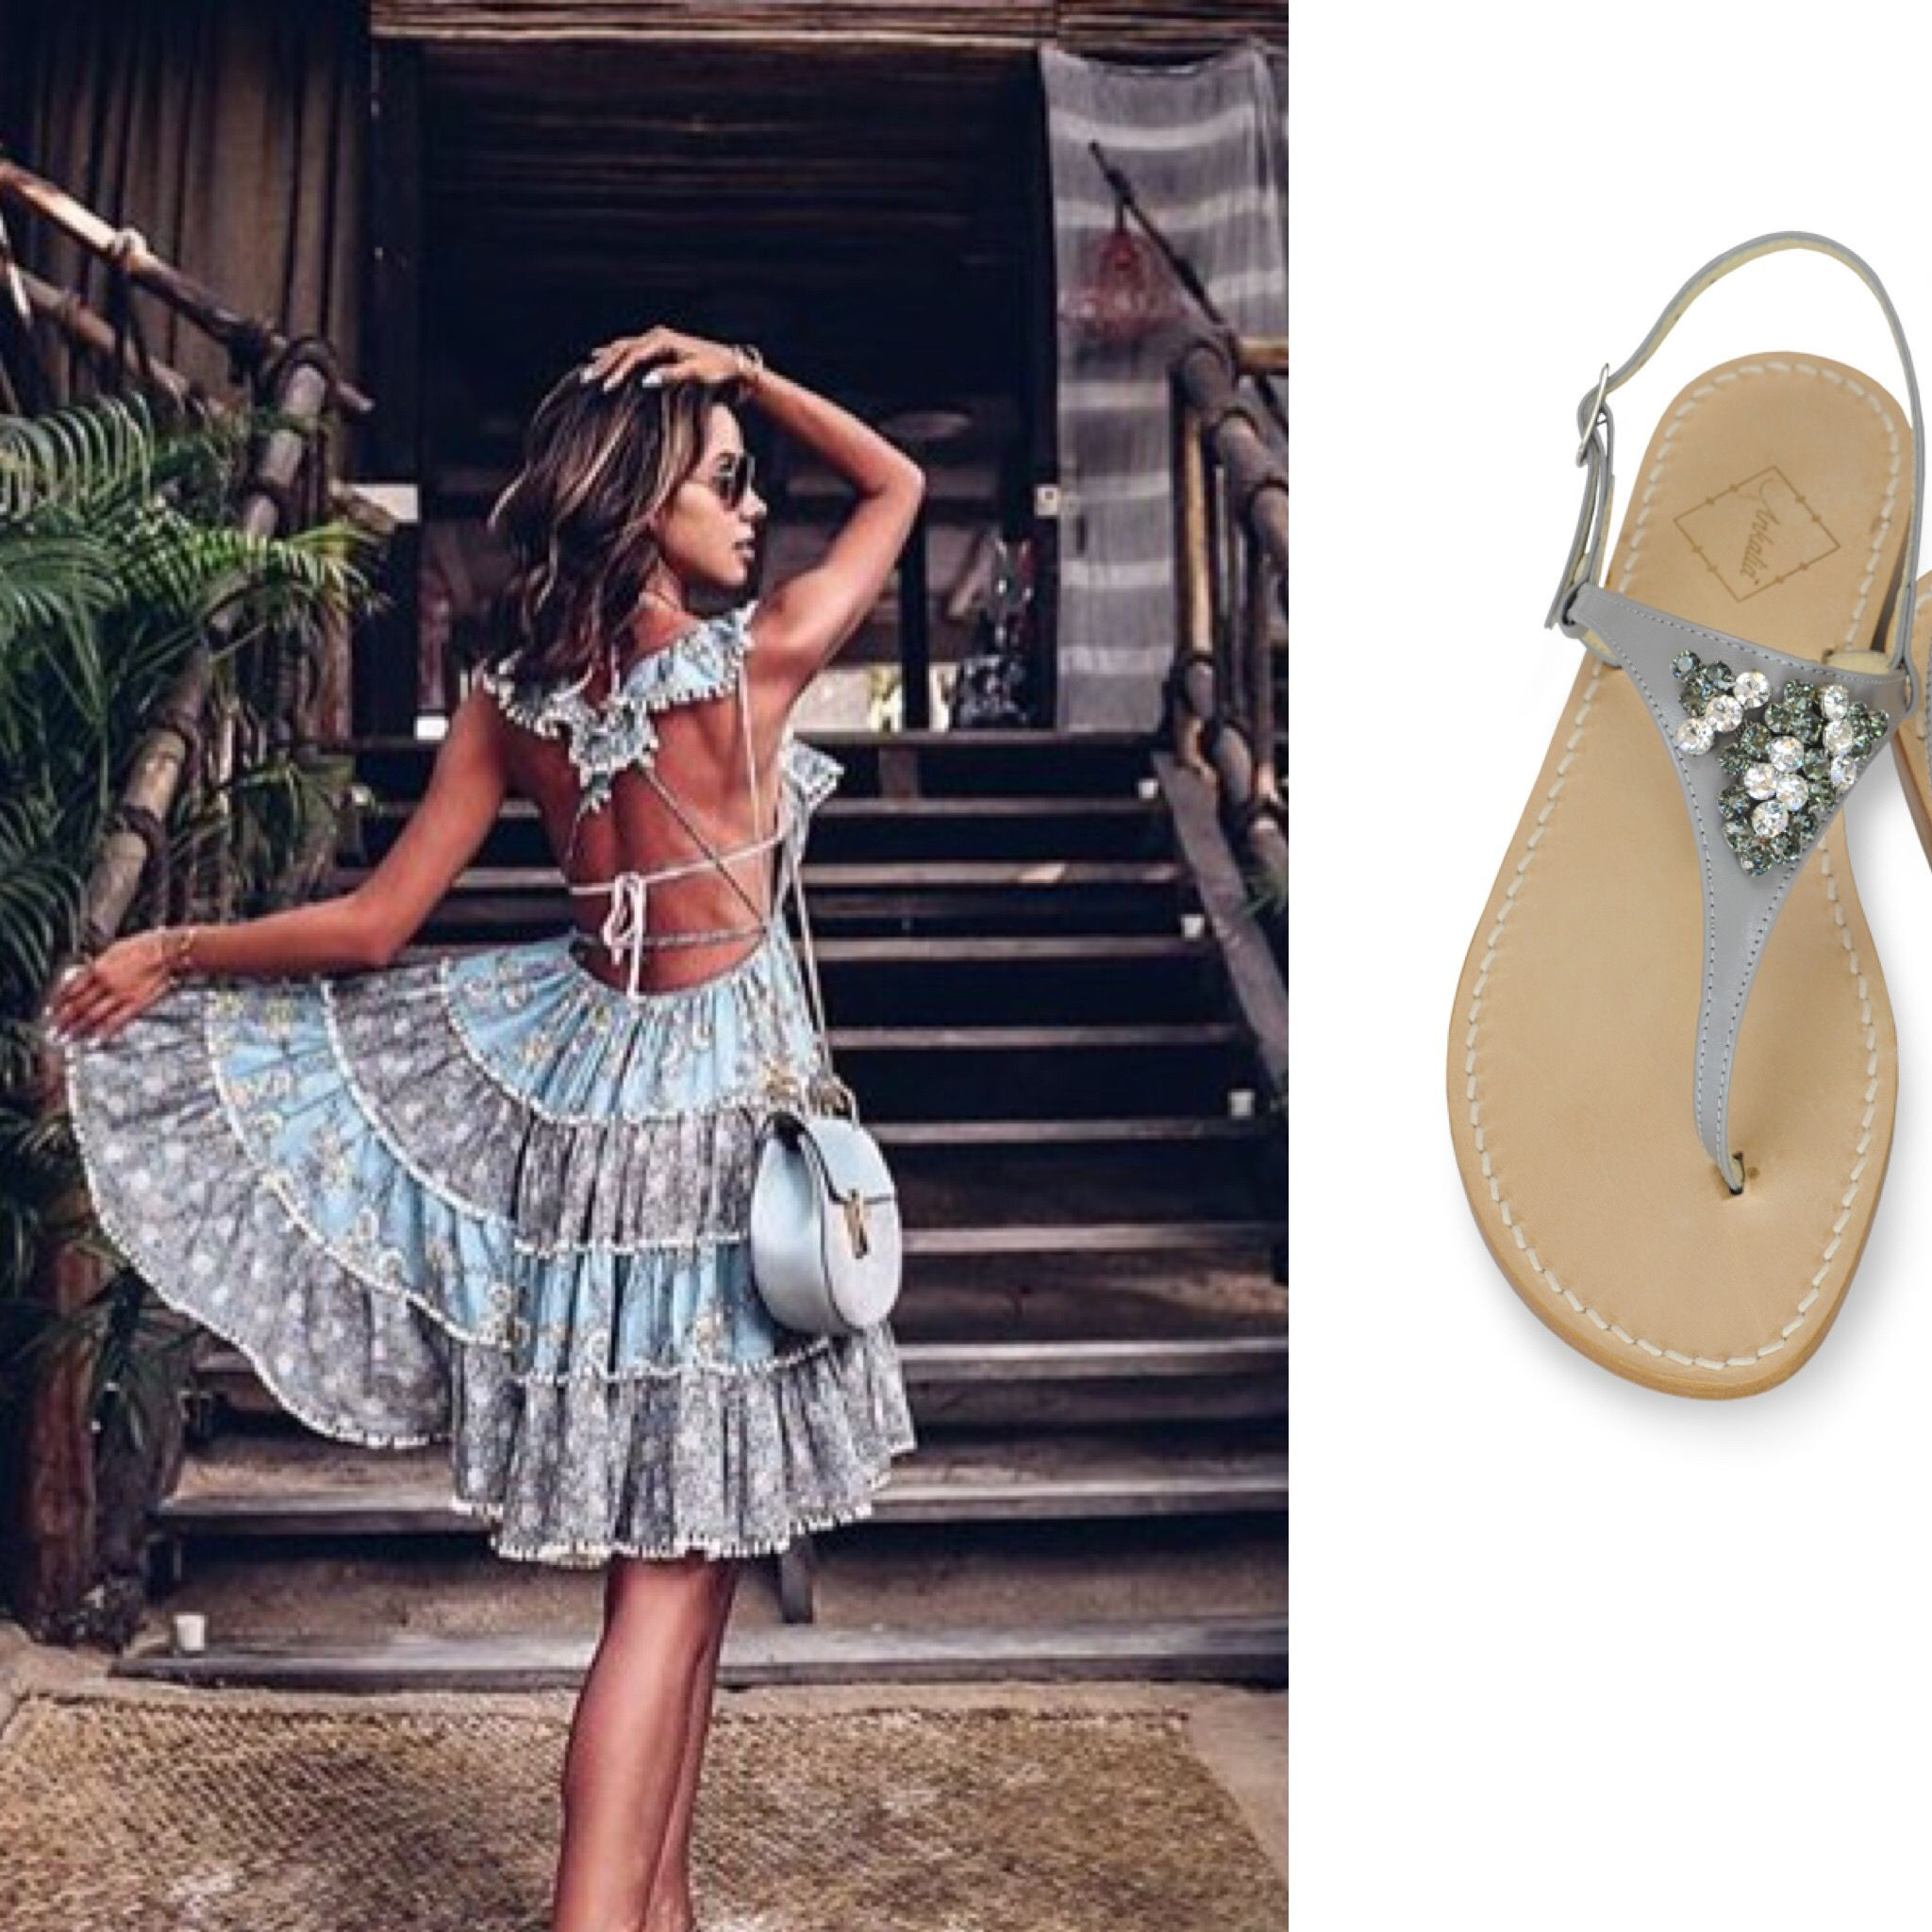 d0baeaa5b9 Zimmerman dress worn by Annabelle Fleur. Perfect with our Amanda sandals in  grey leather with